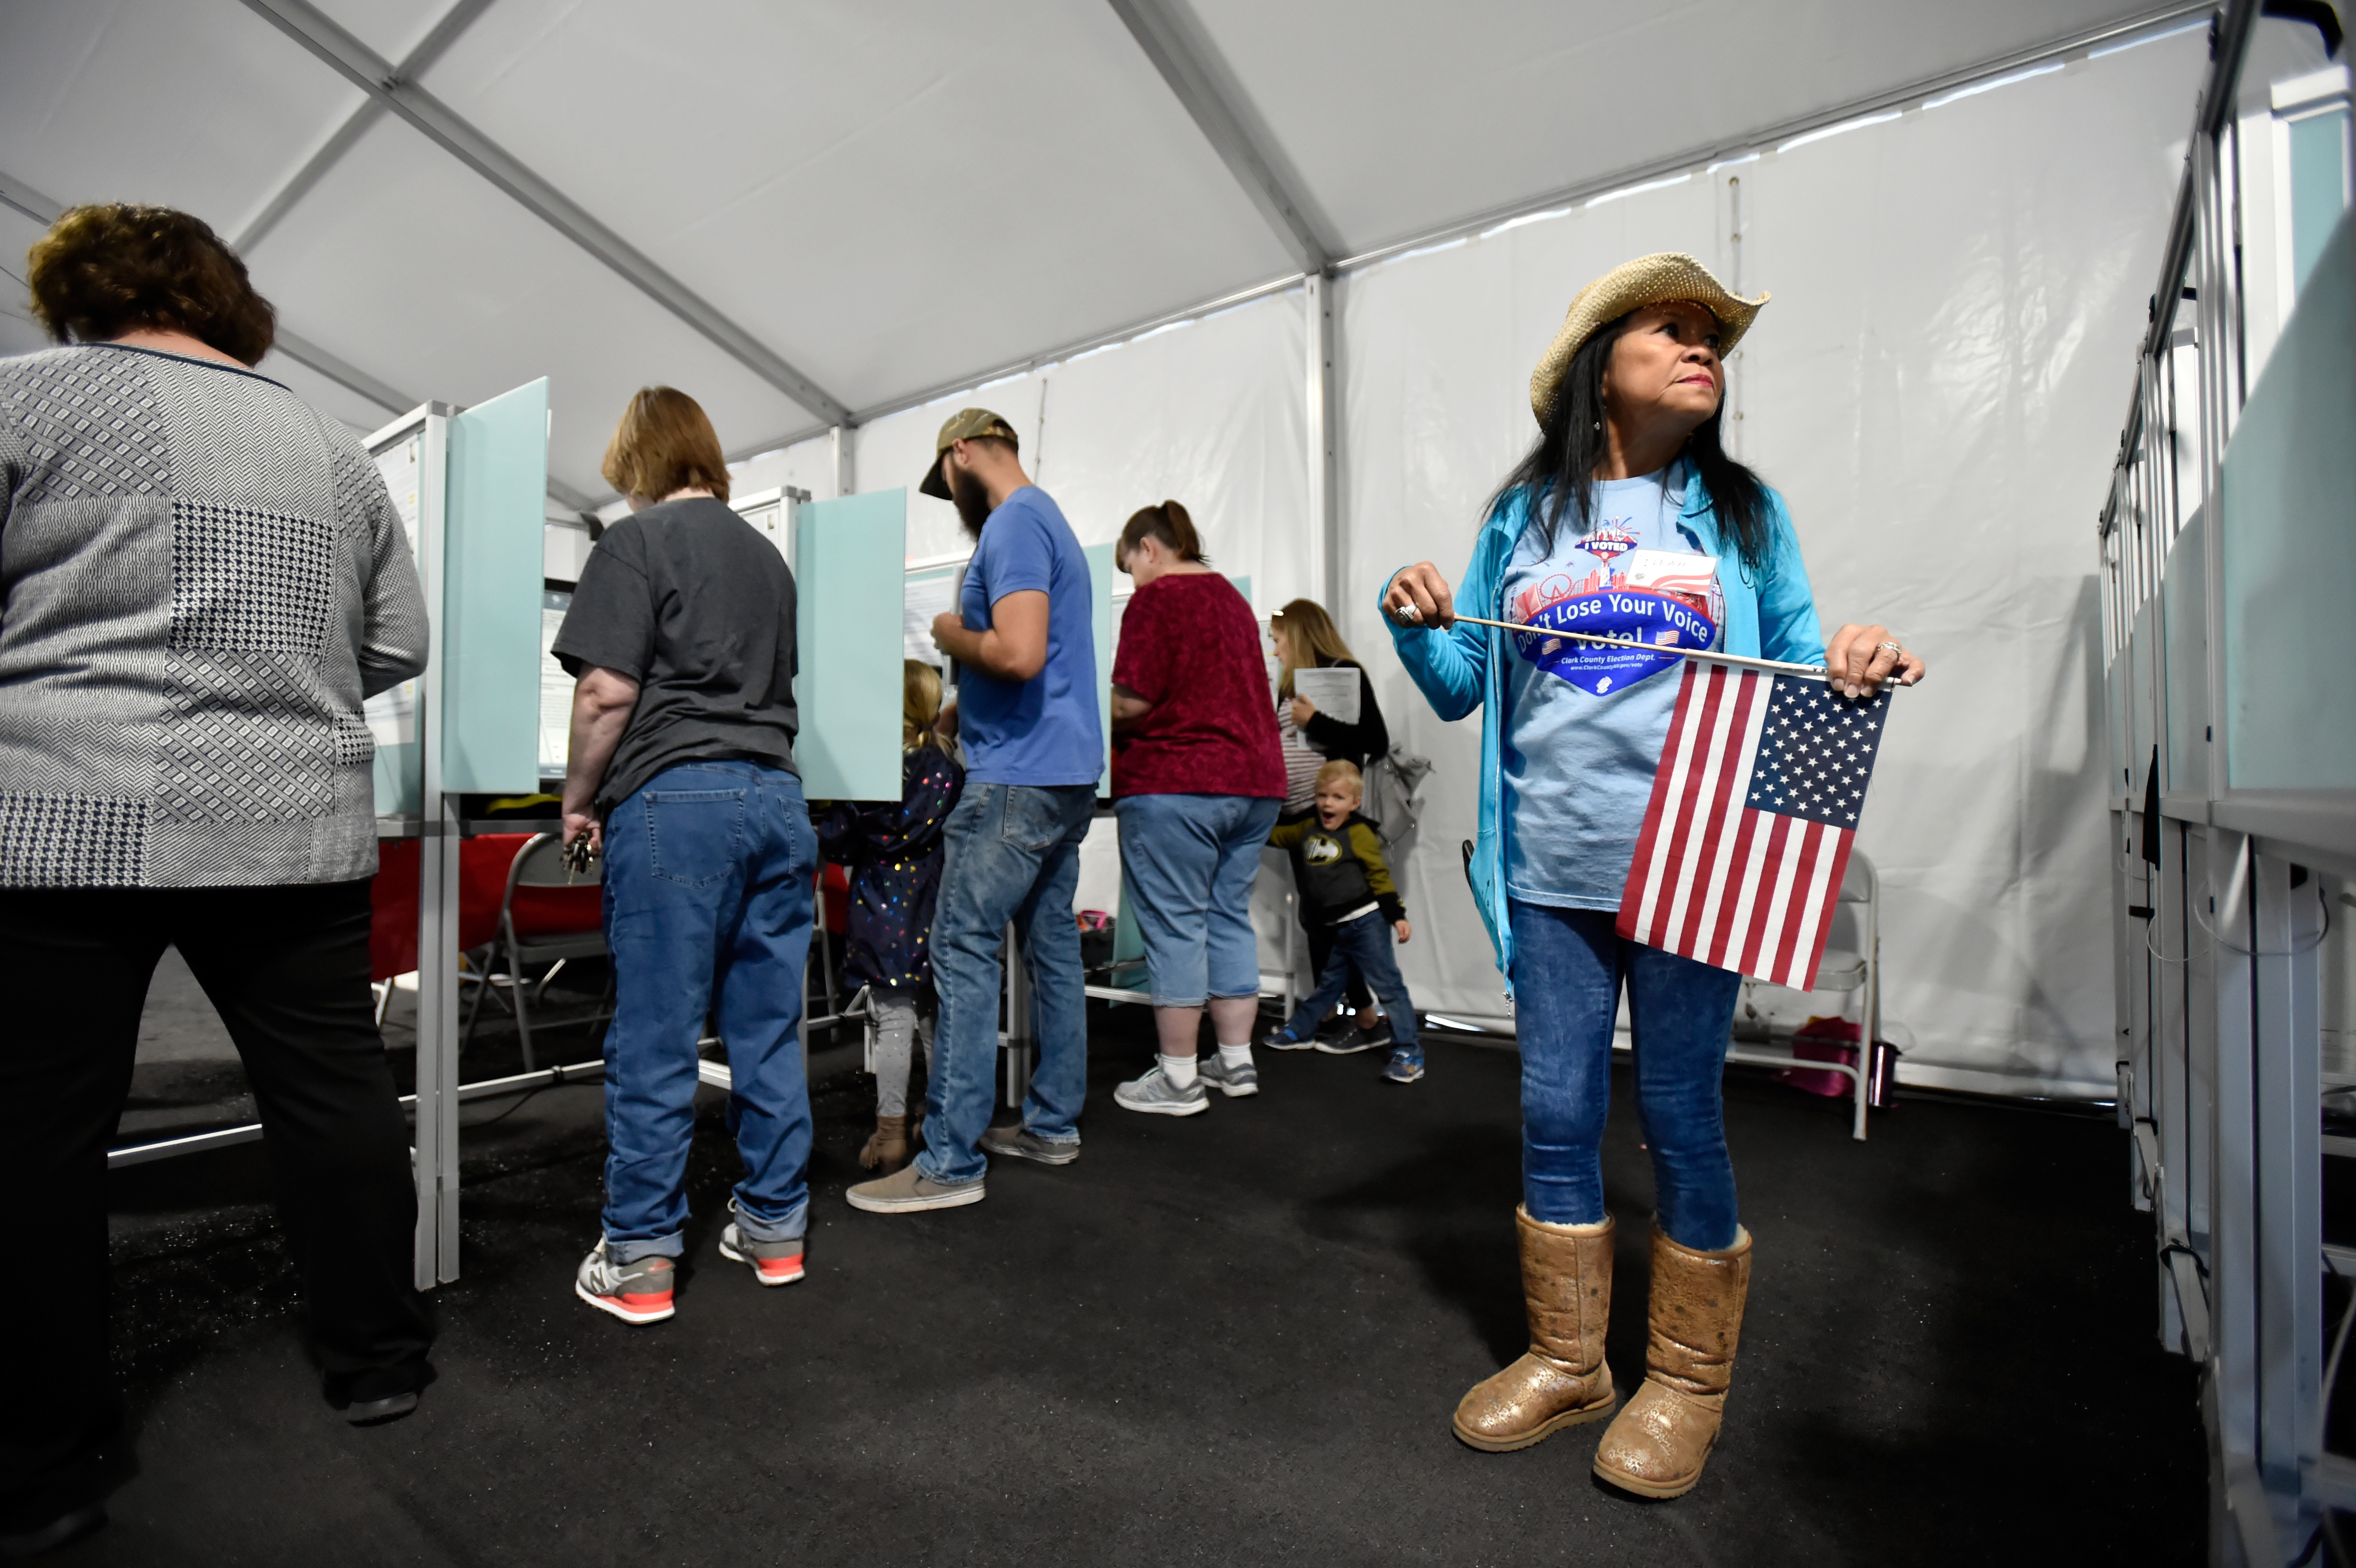 Early numbers suggest voter turnout soared in the 2018 midterms